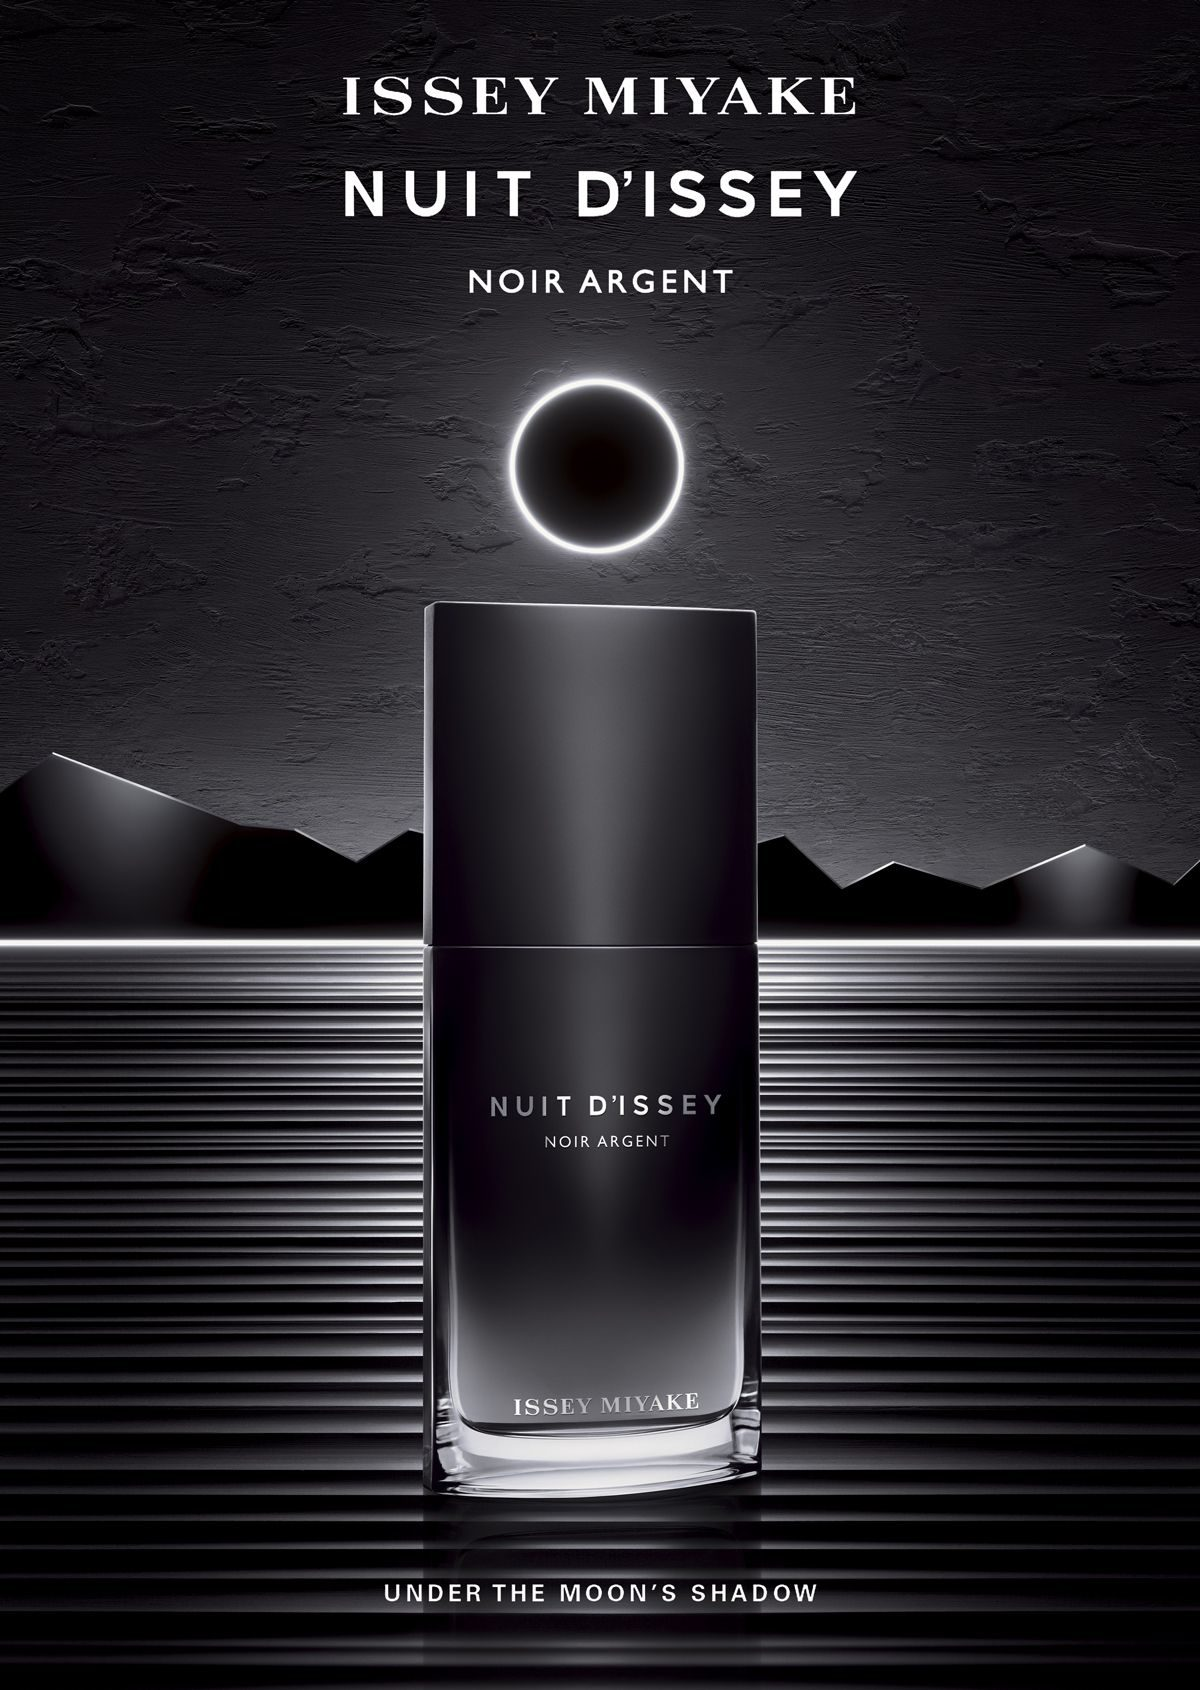 Issey Miyake Nuit D'Issey Noir Argent  The fashion house of Issey Miyake delights its wearers with a new tempting and exquisite fragrance for men, Nuit D'Issey Noir Argent. 'Under the moon's shadow' comes the new perfume's slogan thus inspiring an intense, long-lasting and an evening masculine perfume for manly-man. Issey Miyake Nuit D'Issey Noir Argent is described as a fresh/woody intense fragrance with a nice and arresting aroma to beckon a woman's heart. Created by famous perfumer Dominique Ropion and marked by the Shiseido Group, the new fragrance will constantly seduce with its lingering sensuality.    Nuit D'Issey Noir Argent opens with spice notes of pink and black pepper, nutmeg, leather along with woody ingredients of patchouli, wood, myrrh, oriental saffron,and vetiver. Nuit D'Issey Noir Argent follows the original version Nuit D'Issey launched in 2014 and promises to elude the same radiance, elegant aroma as the original fragrance and not to dissatisfy.  Issey Miyake Nuit D'Issey Noir Argent is available in 100ml Eau de Toilette.